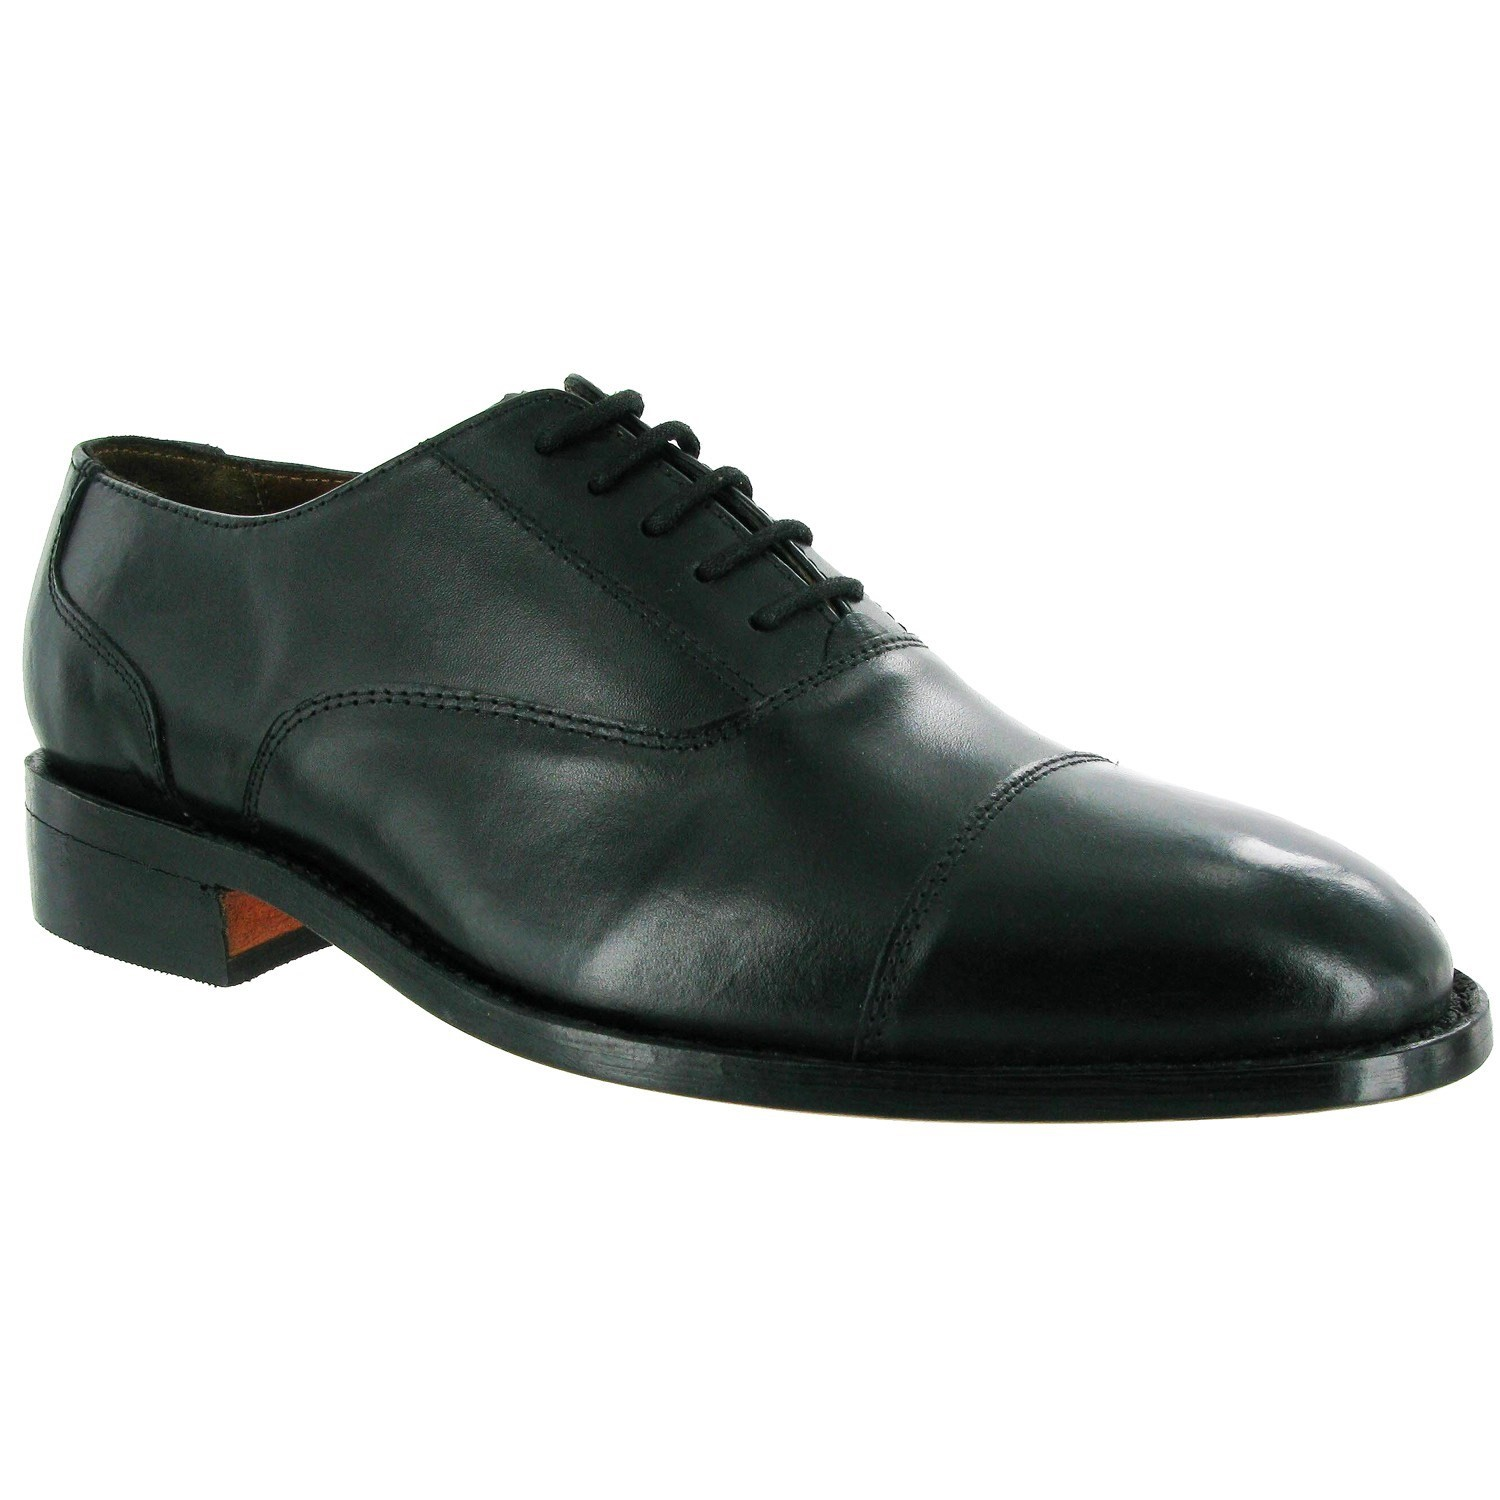 Amblers Mens James Leather Soled Oxford Dress shoes